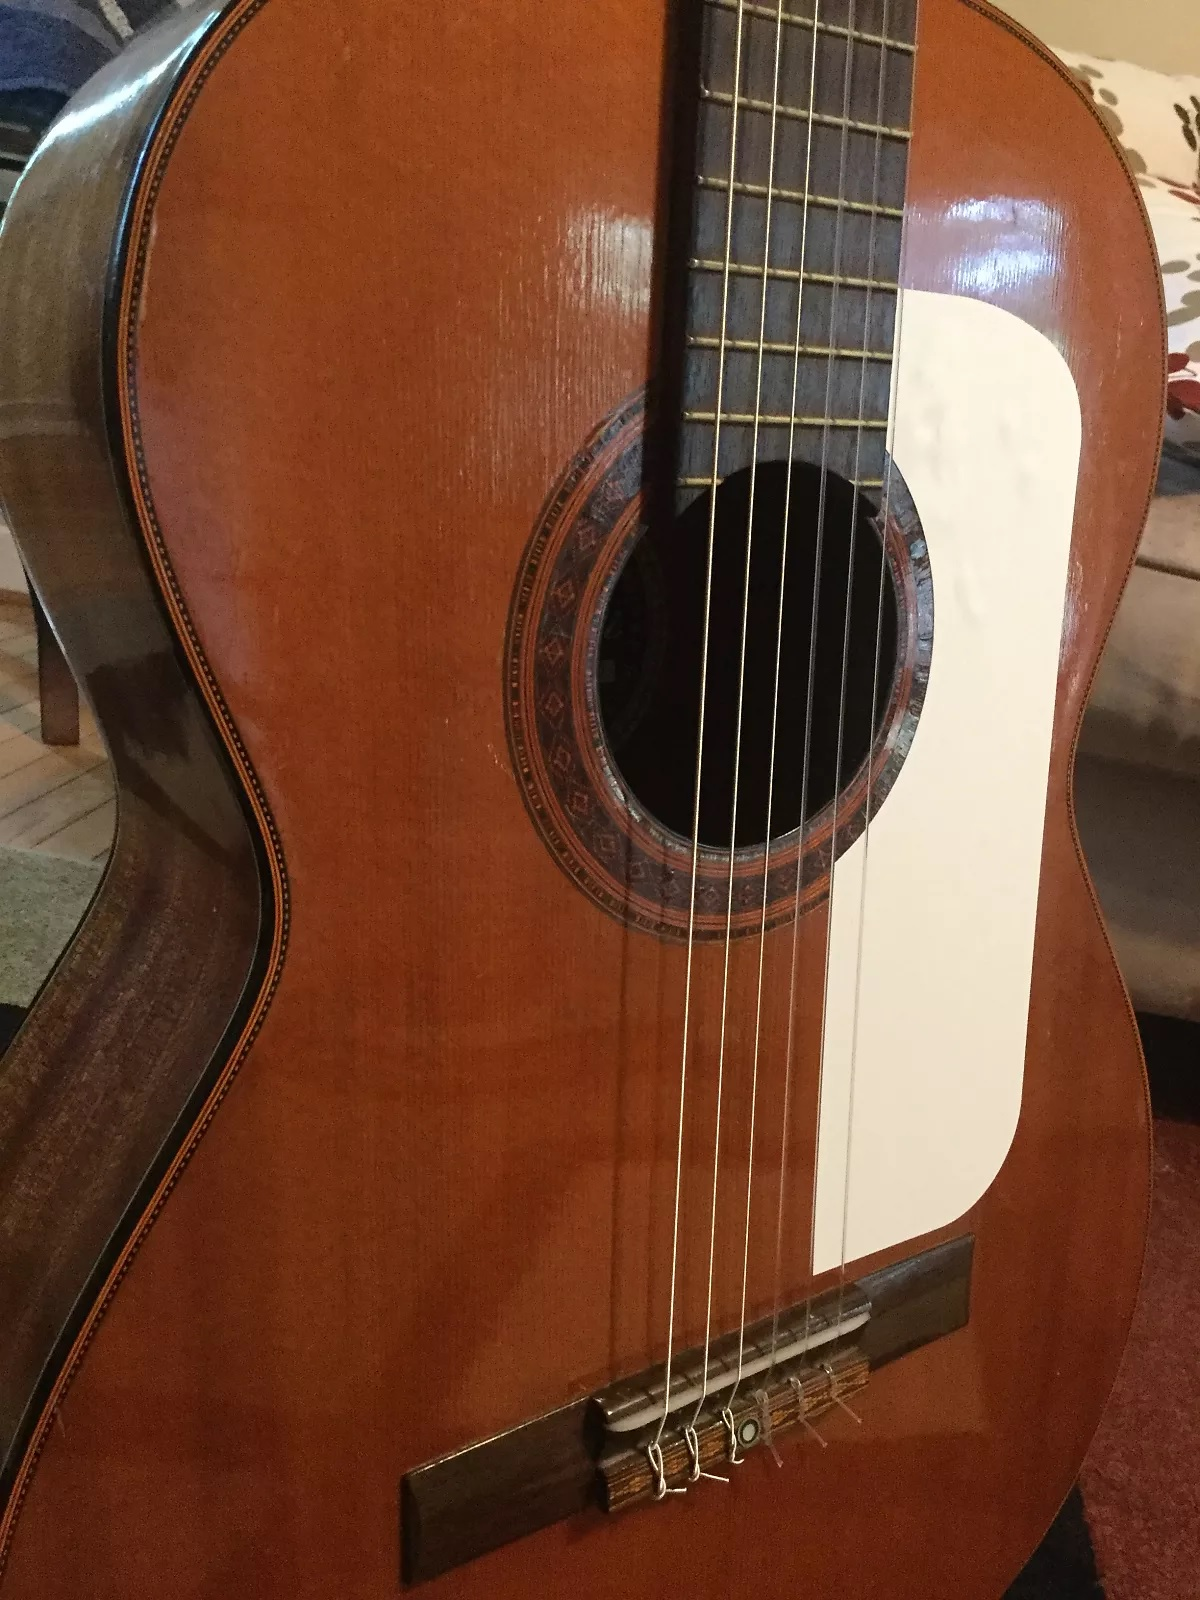 Mississippi Son Guitars: 1958 Kazuo Yairi Classical Guitar